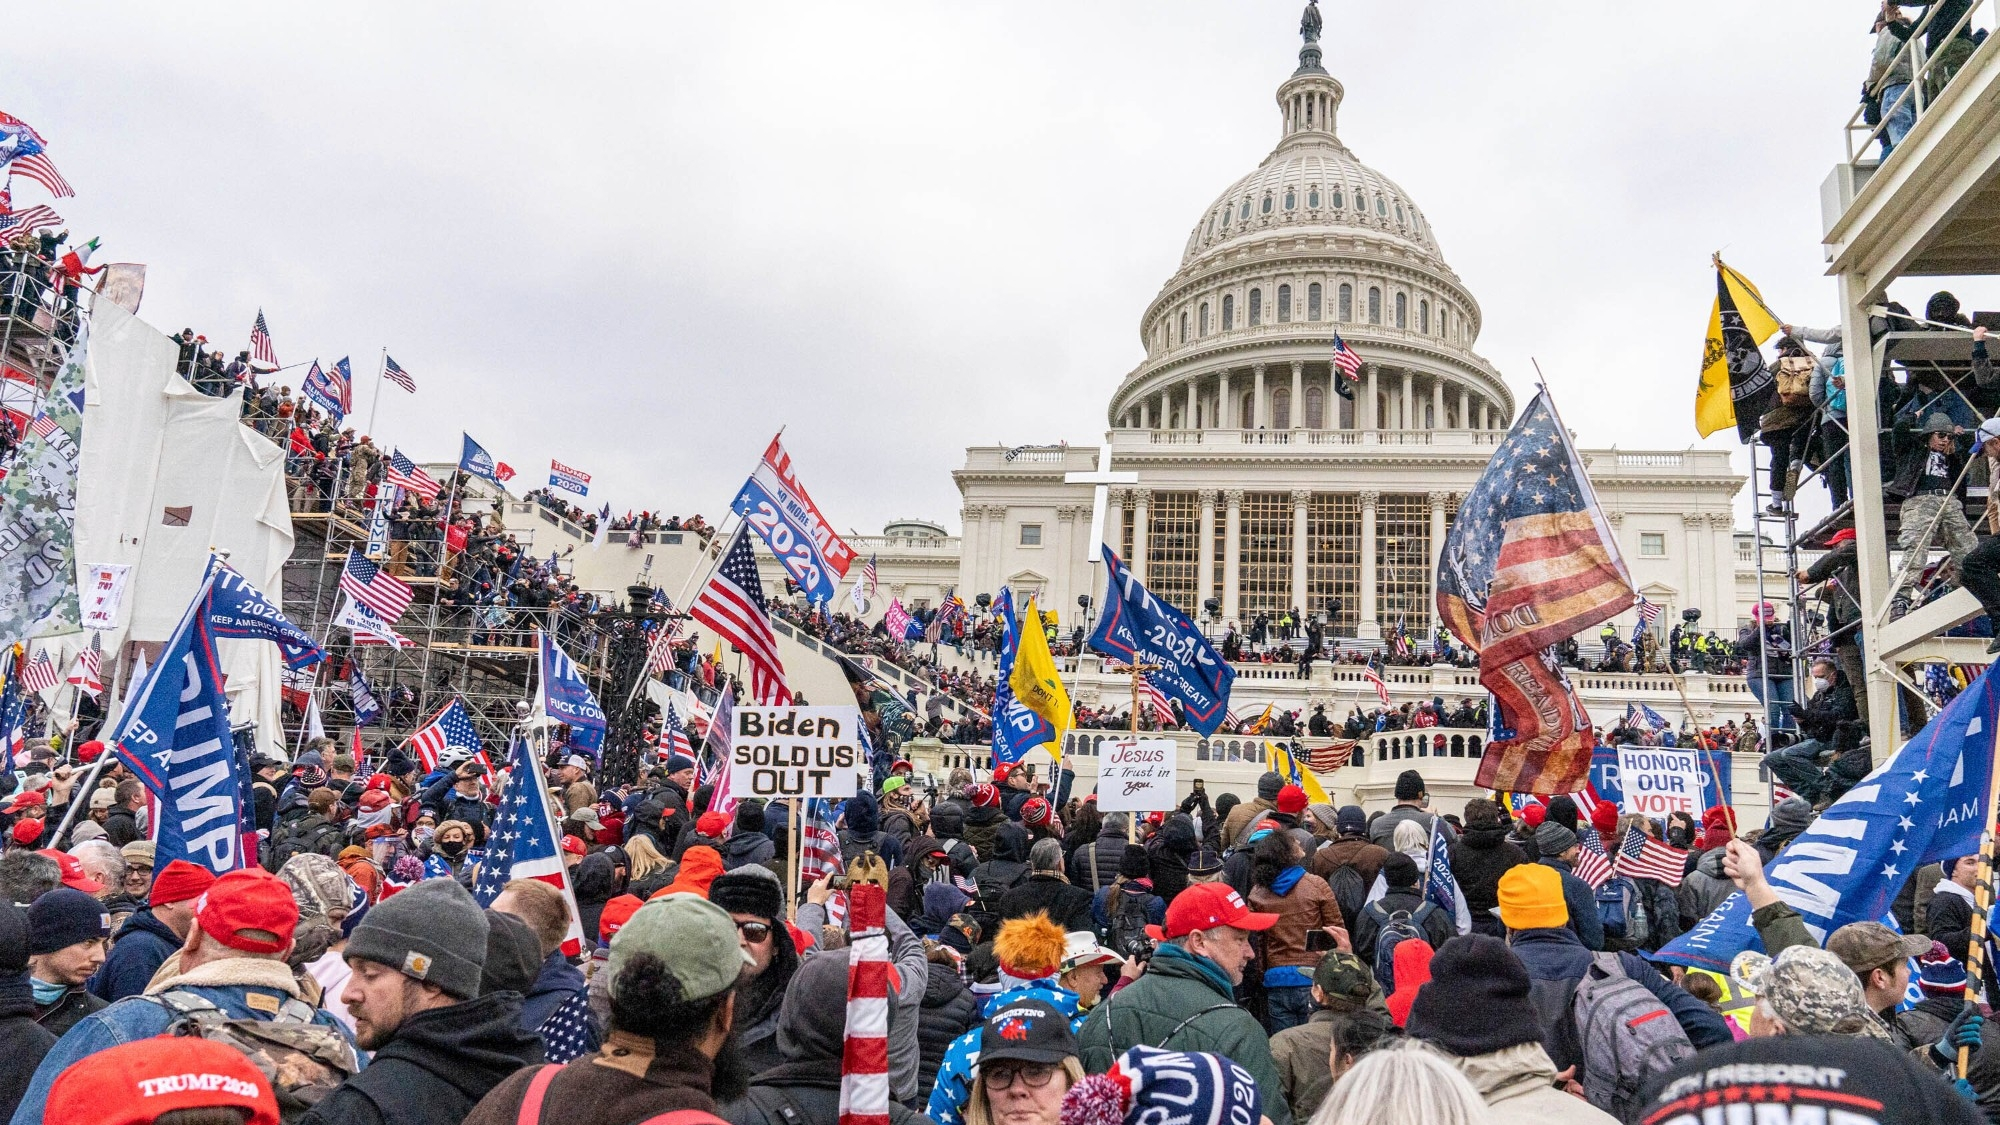 Demonstrators breaching the U.S. Capitol as they protest the results of the 2020 presidential election,  January 6, 2021, photo by Mihoko Owada/Star Max/IPx via AP Images